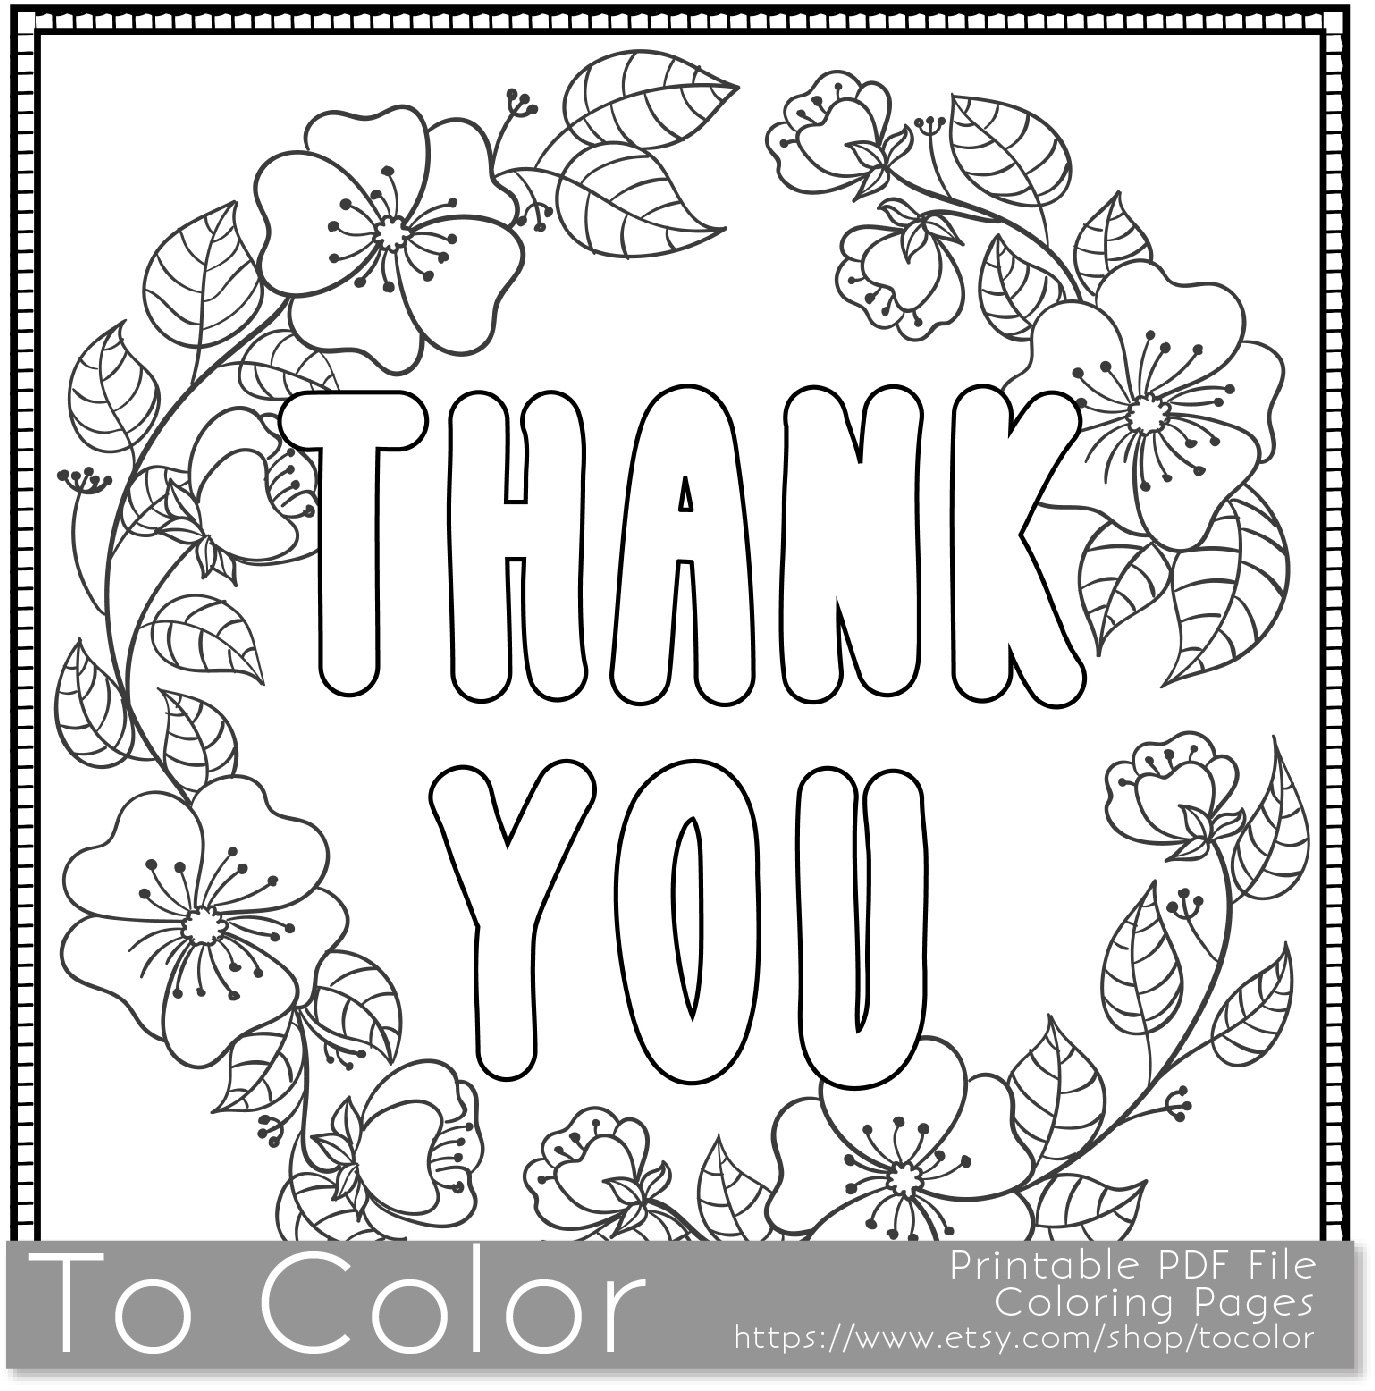 Thank You Printable Coloring Page For Adults Pdf Jpg Instant Download Sentiment Coloring Book Coloring Sheet Digital Stamp Printable Coloring Pages Name Coloring Pages Free Printable Coloring Pages